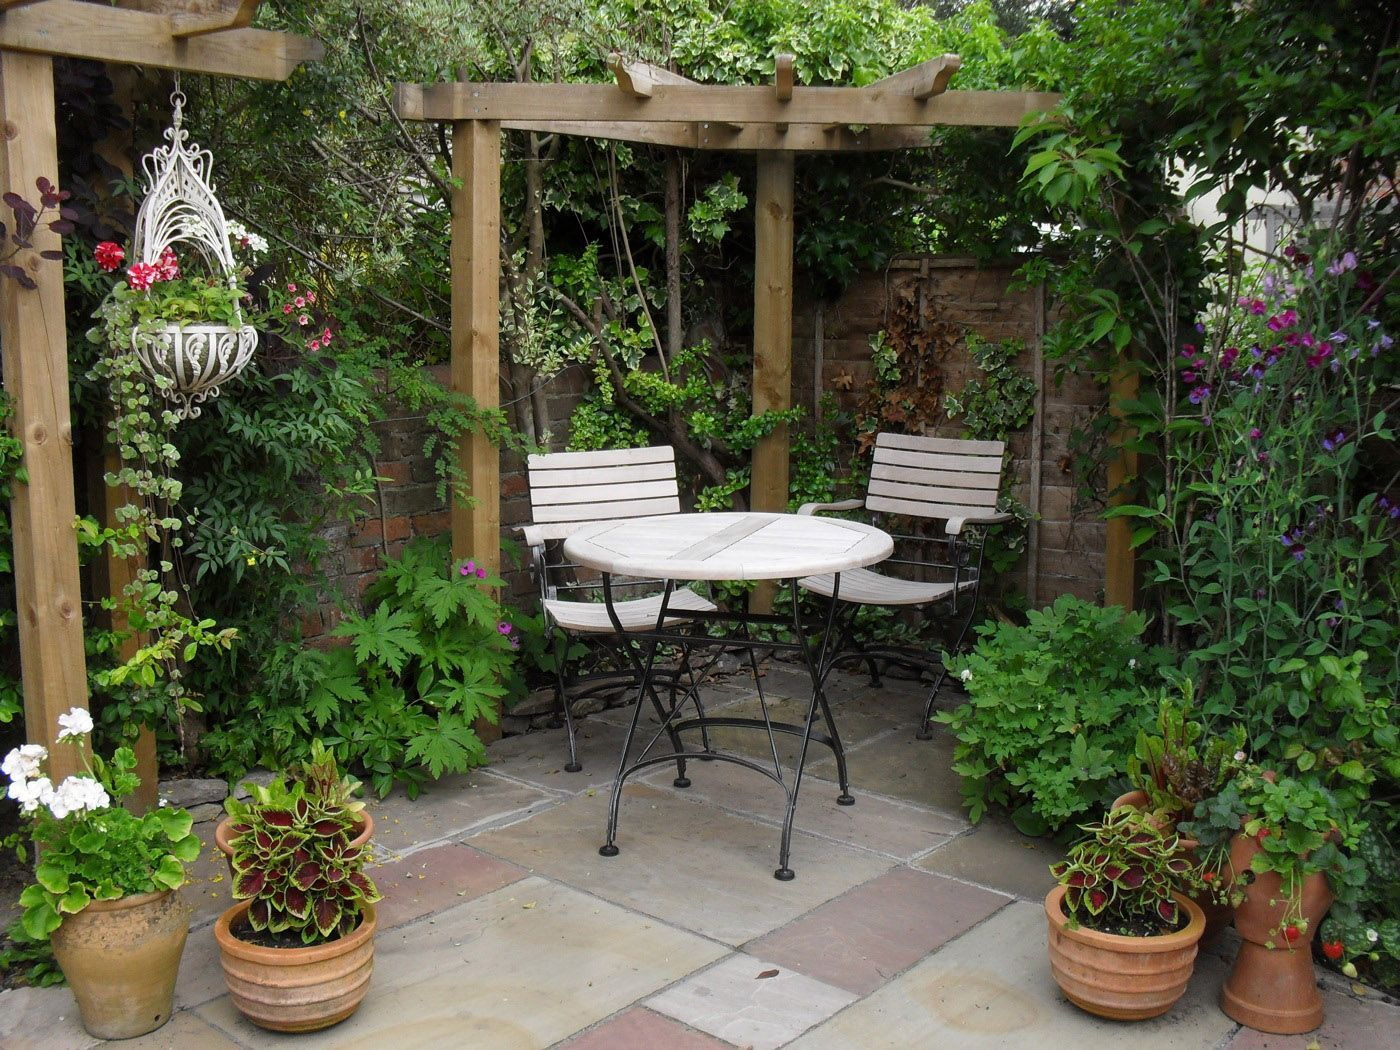 10 Small Courtyard Garden Ideas Most Of The Elegant And Also Beautiful Courtyard Gardens Design Small Courtyard Gardens Small Garden Pergola